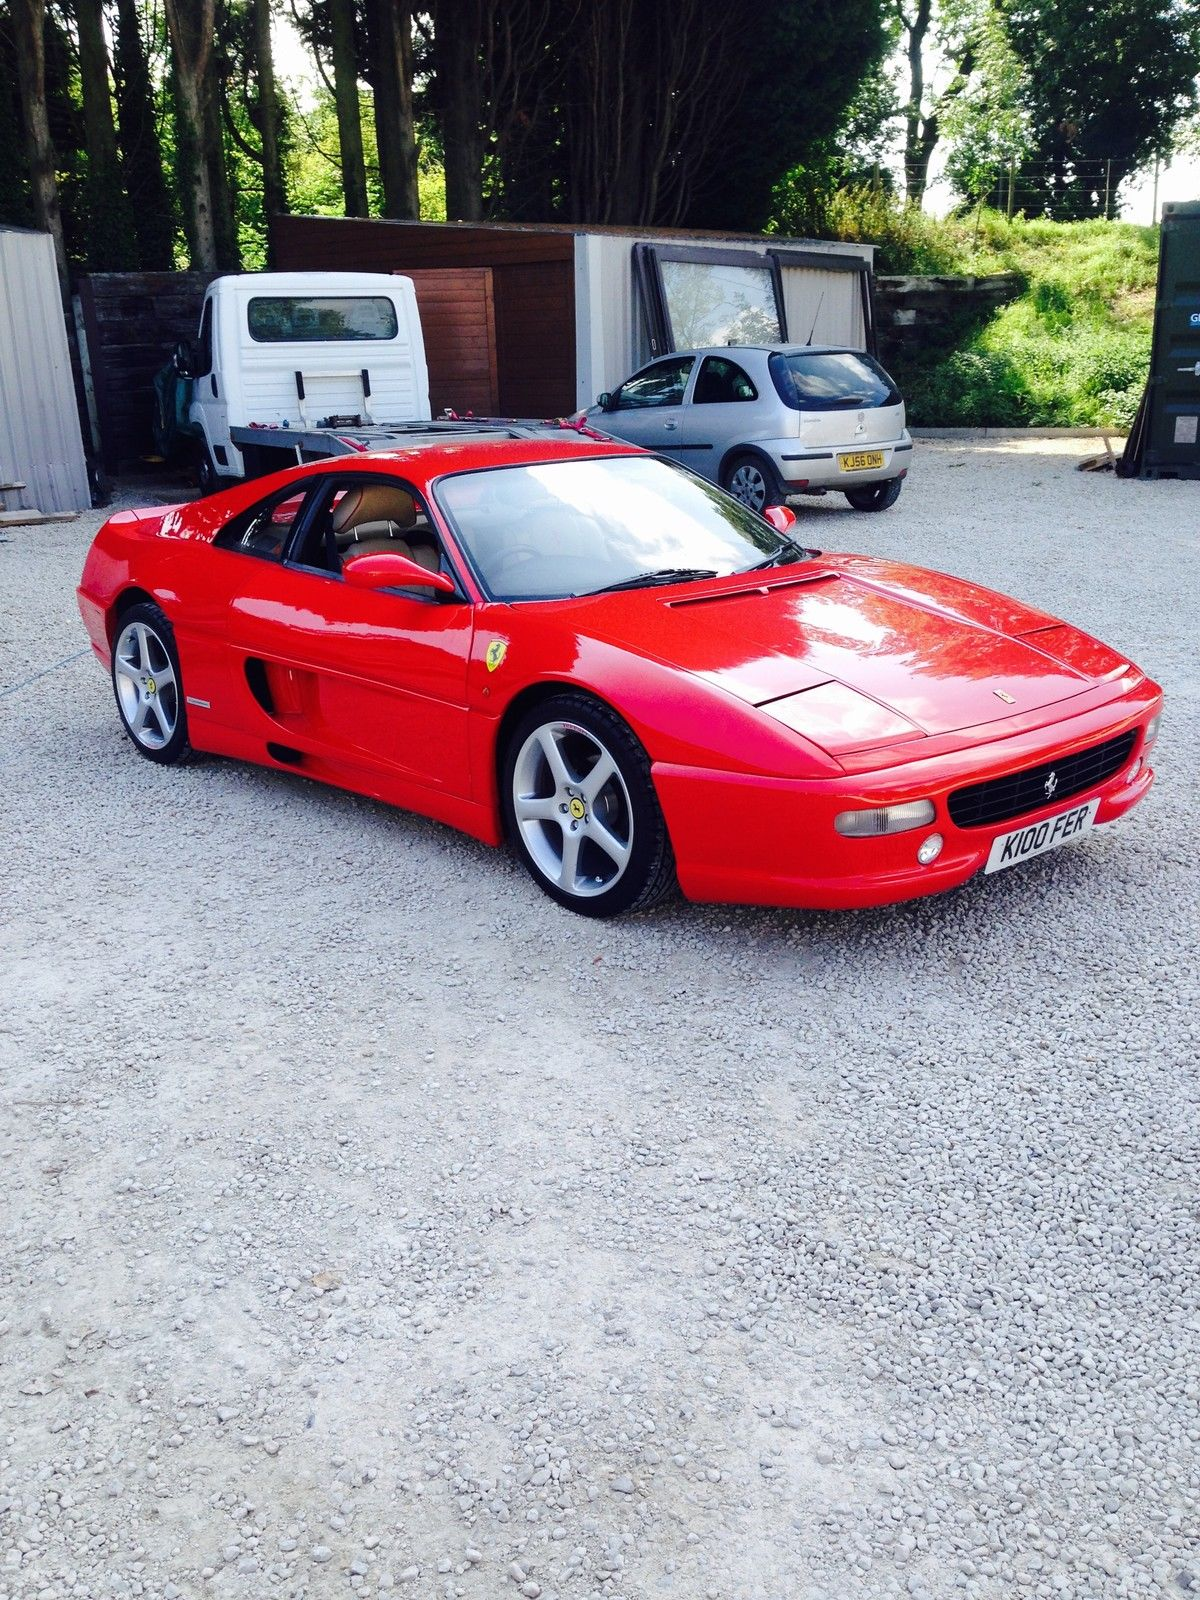 Ferrari Testarossa For Sale Cheap >> 1997 Ferrari F355 Replica / Toyota MR2 for sale